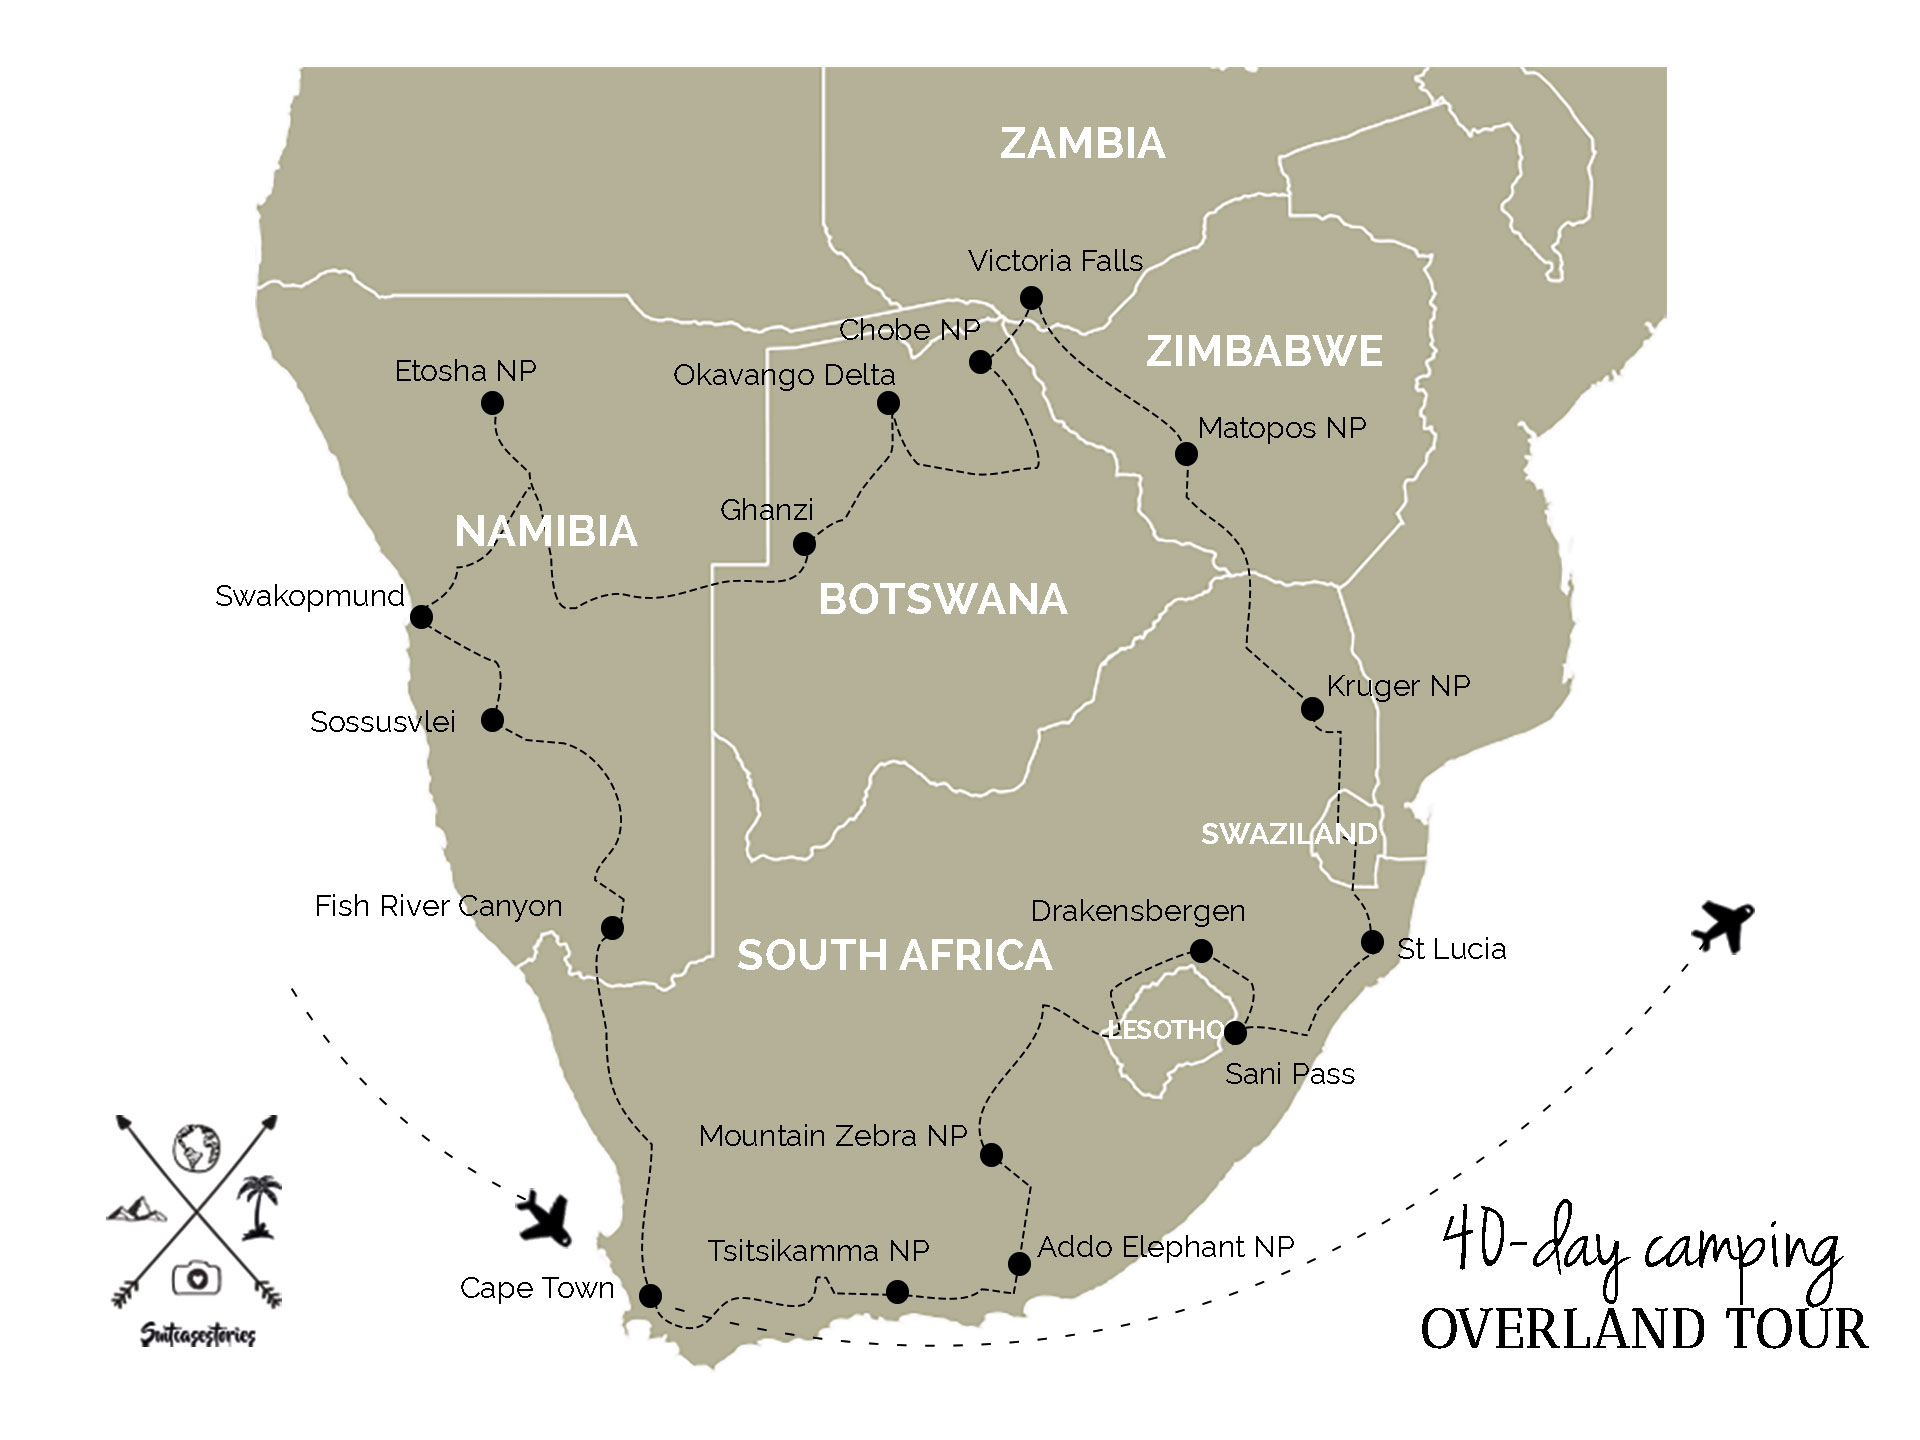 World trip update 40-day camping overland tour Africa